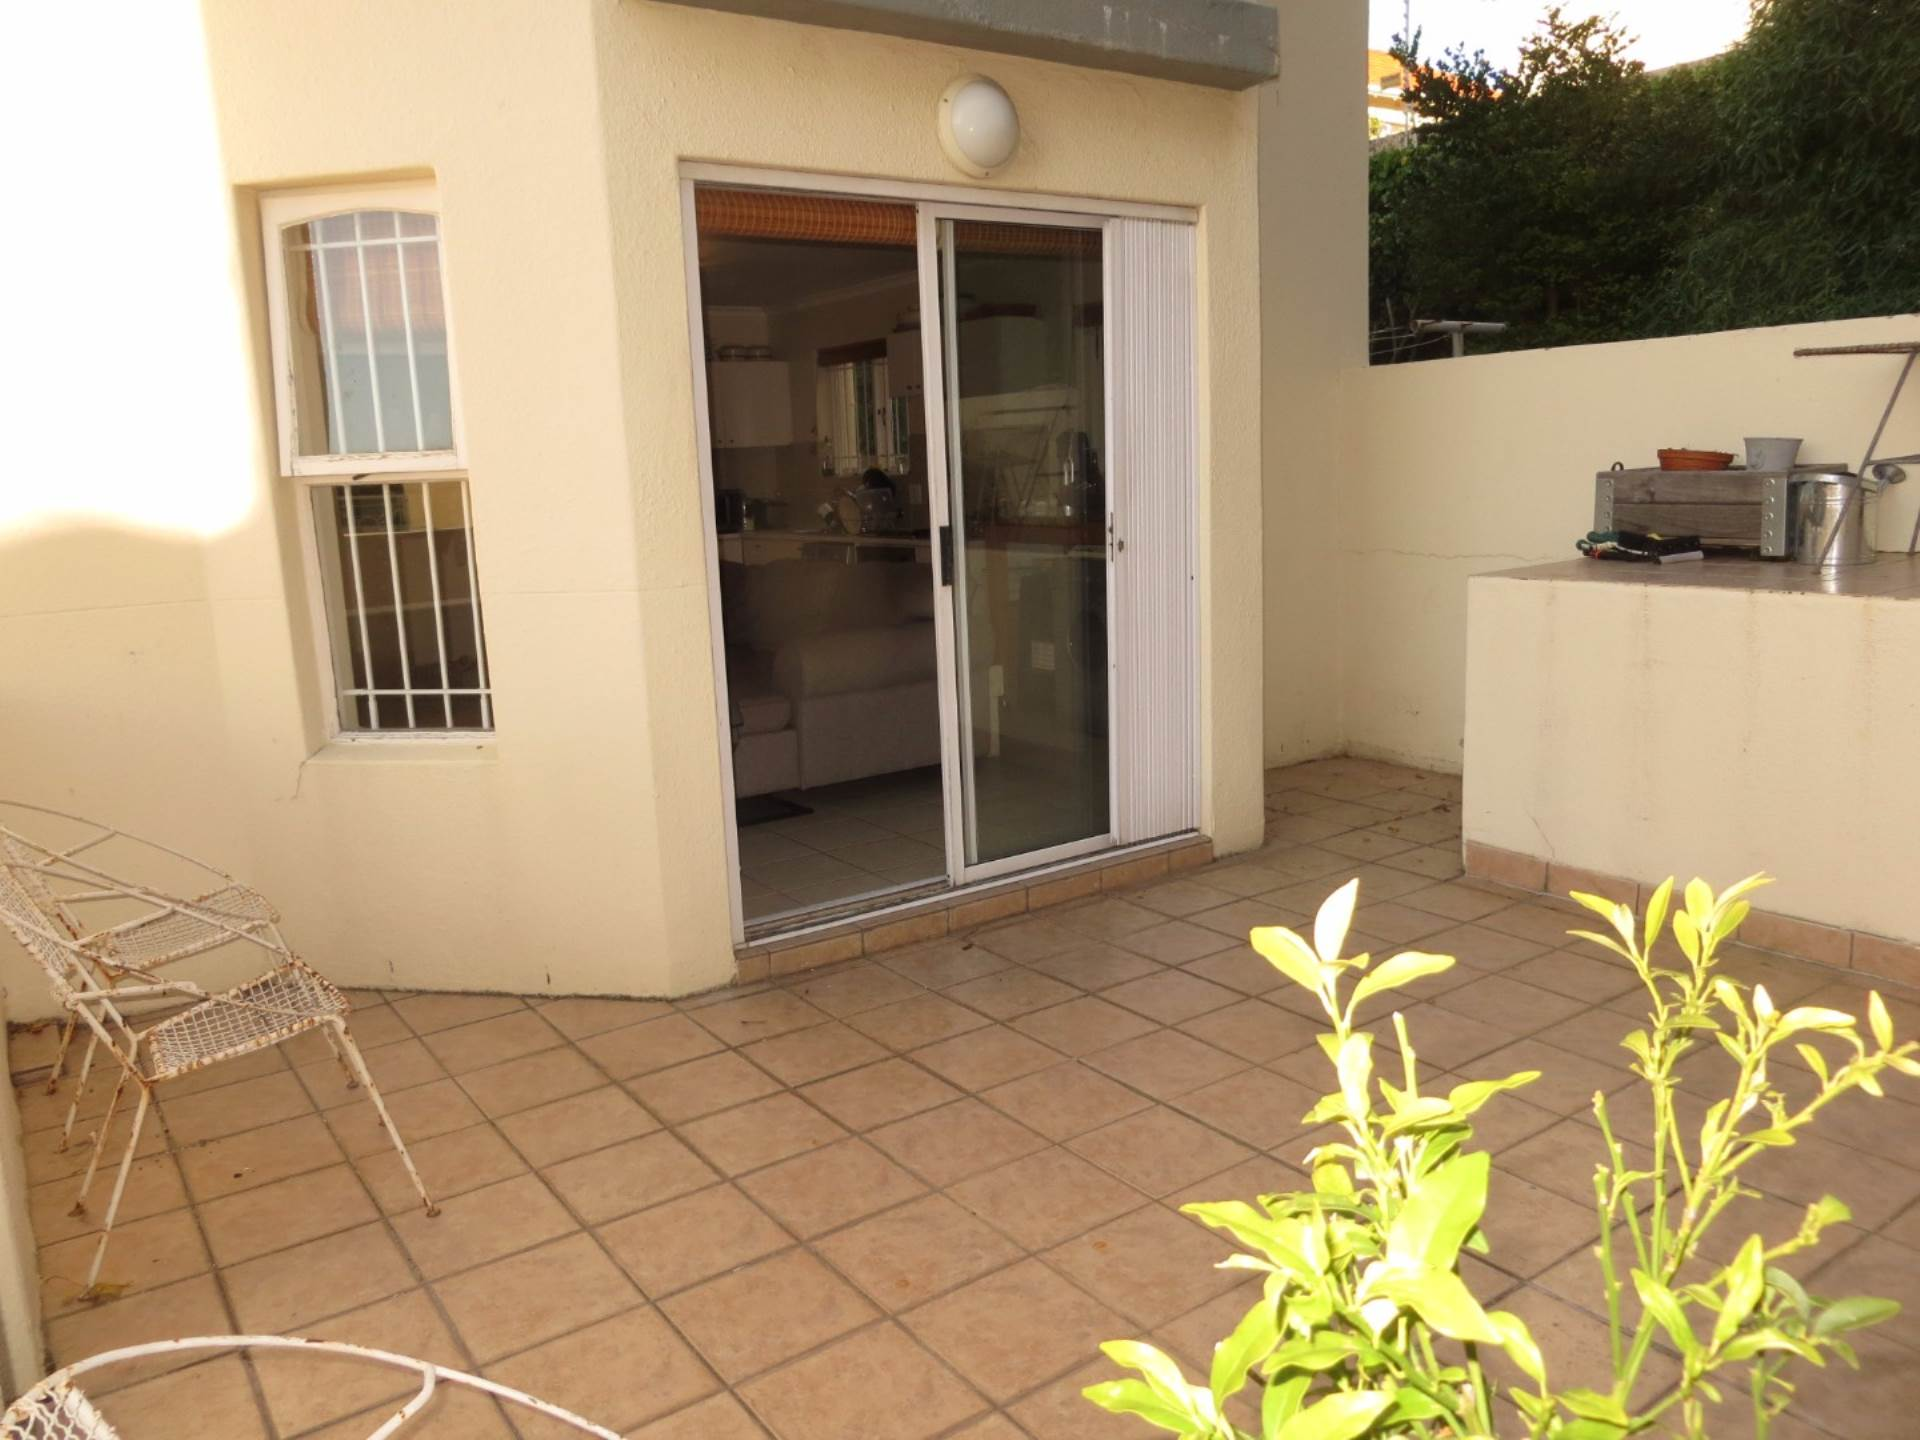 Vredehoek property for sale. Ref No: 13534446. Picture no 4